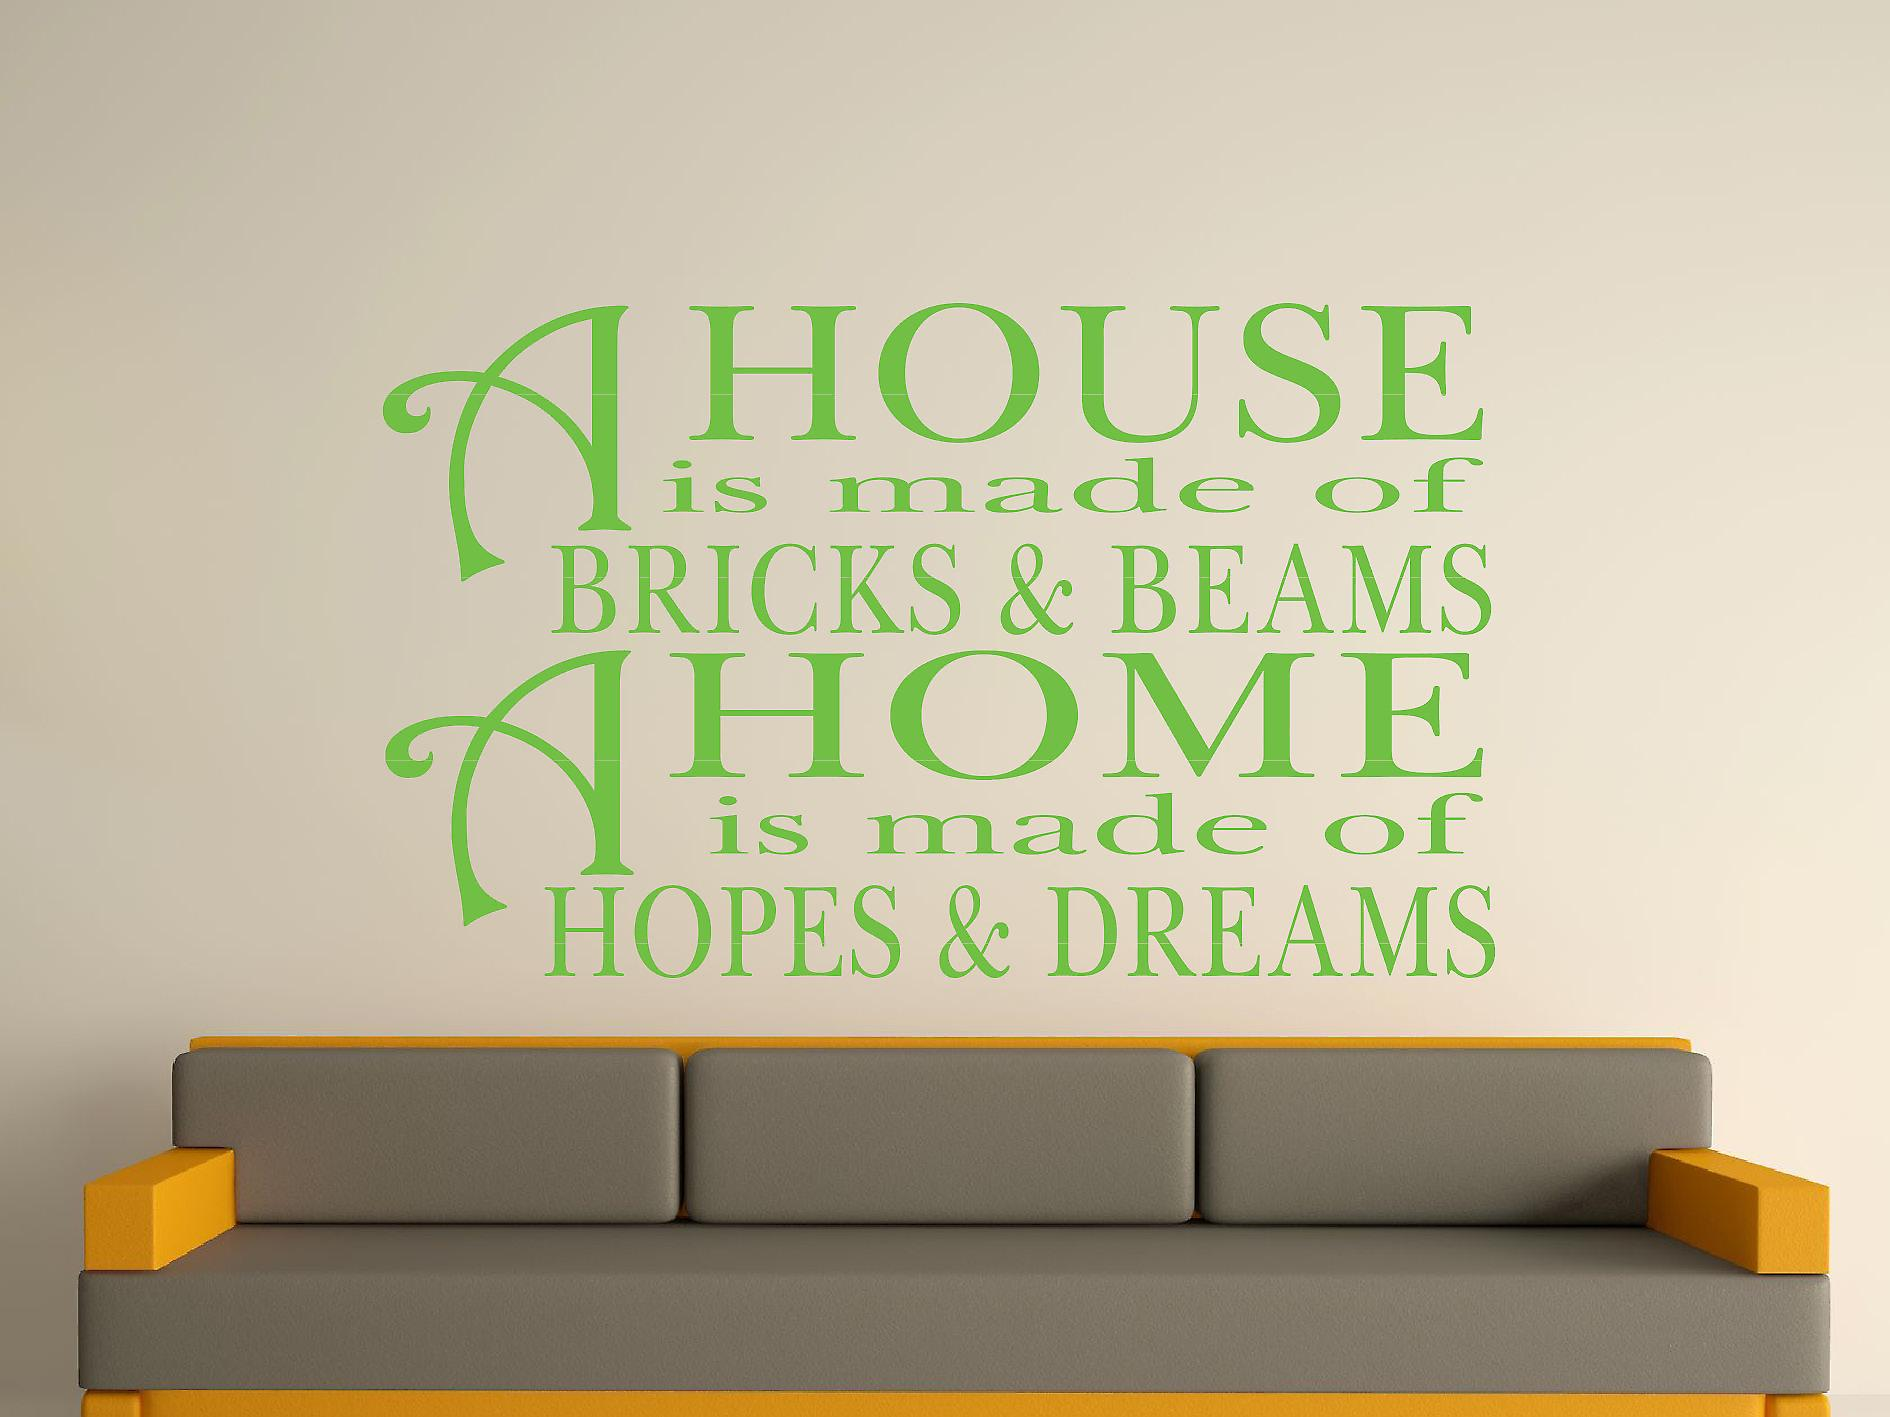 A House Is Made Of Bricks And Beams v2 Wall Art Sticker - Apple Green